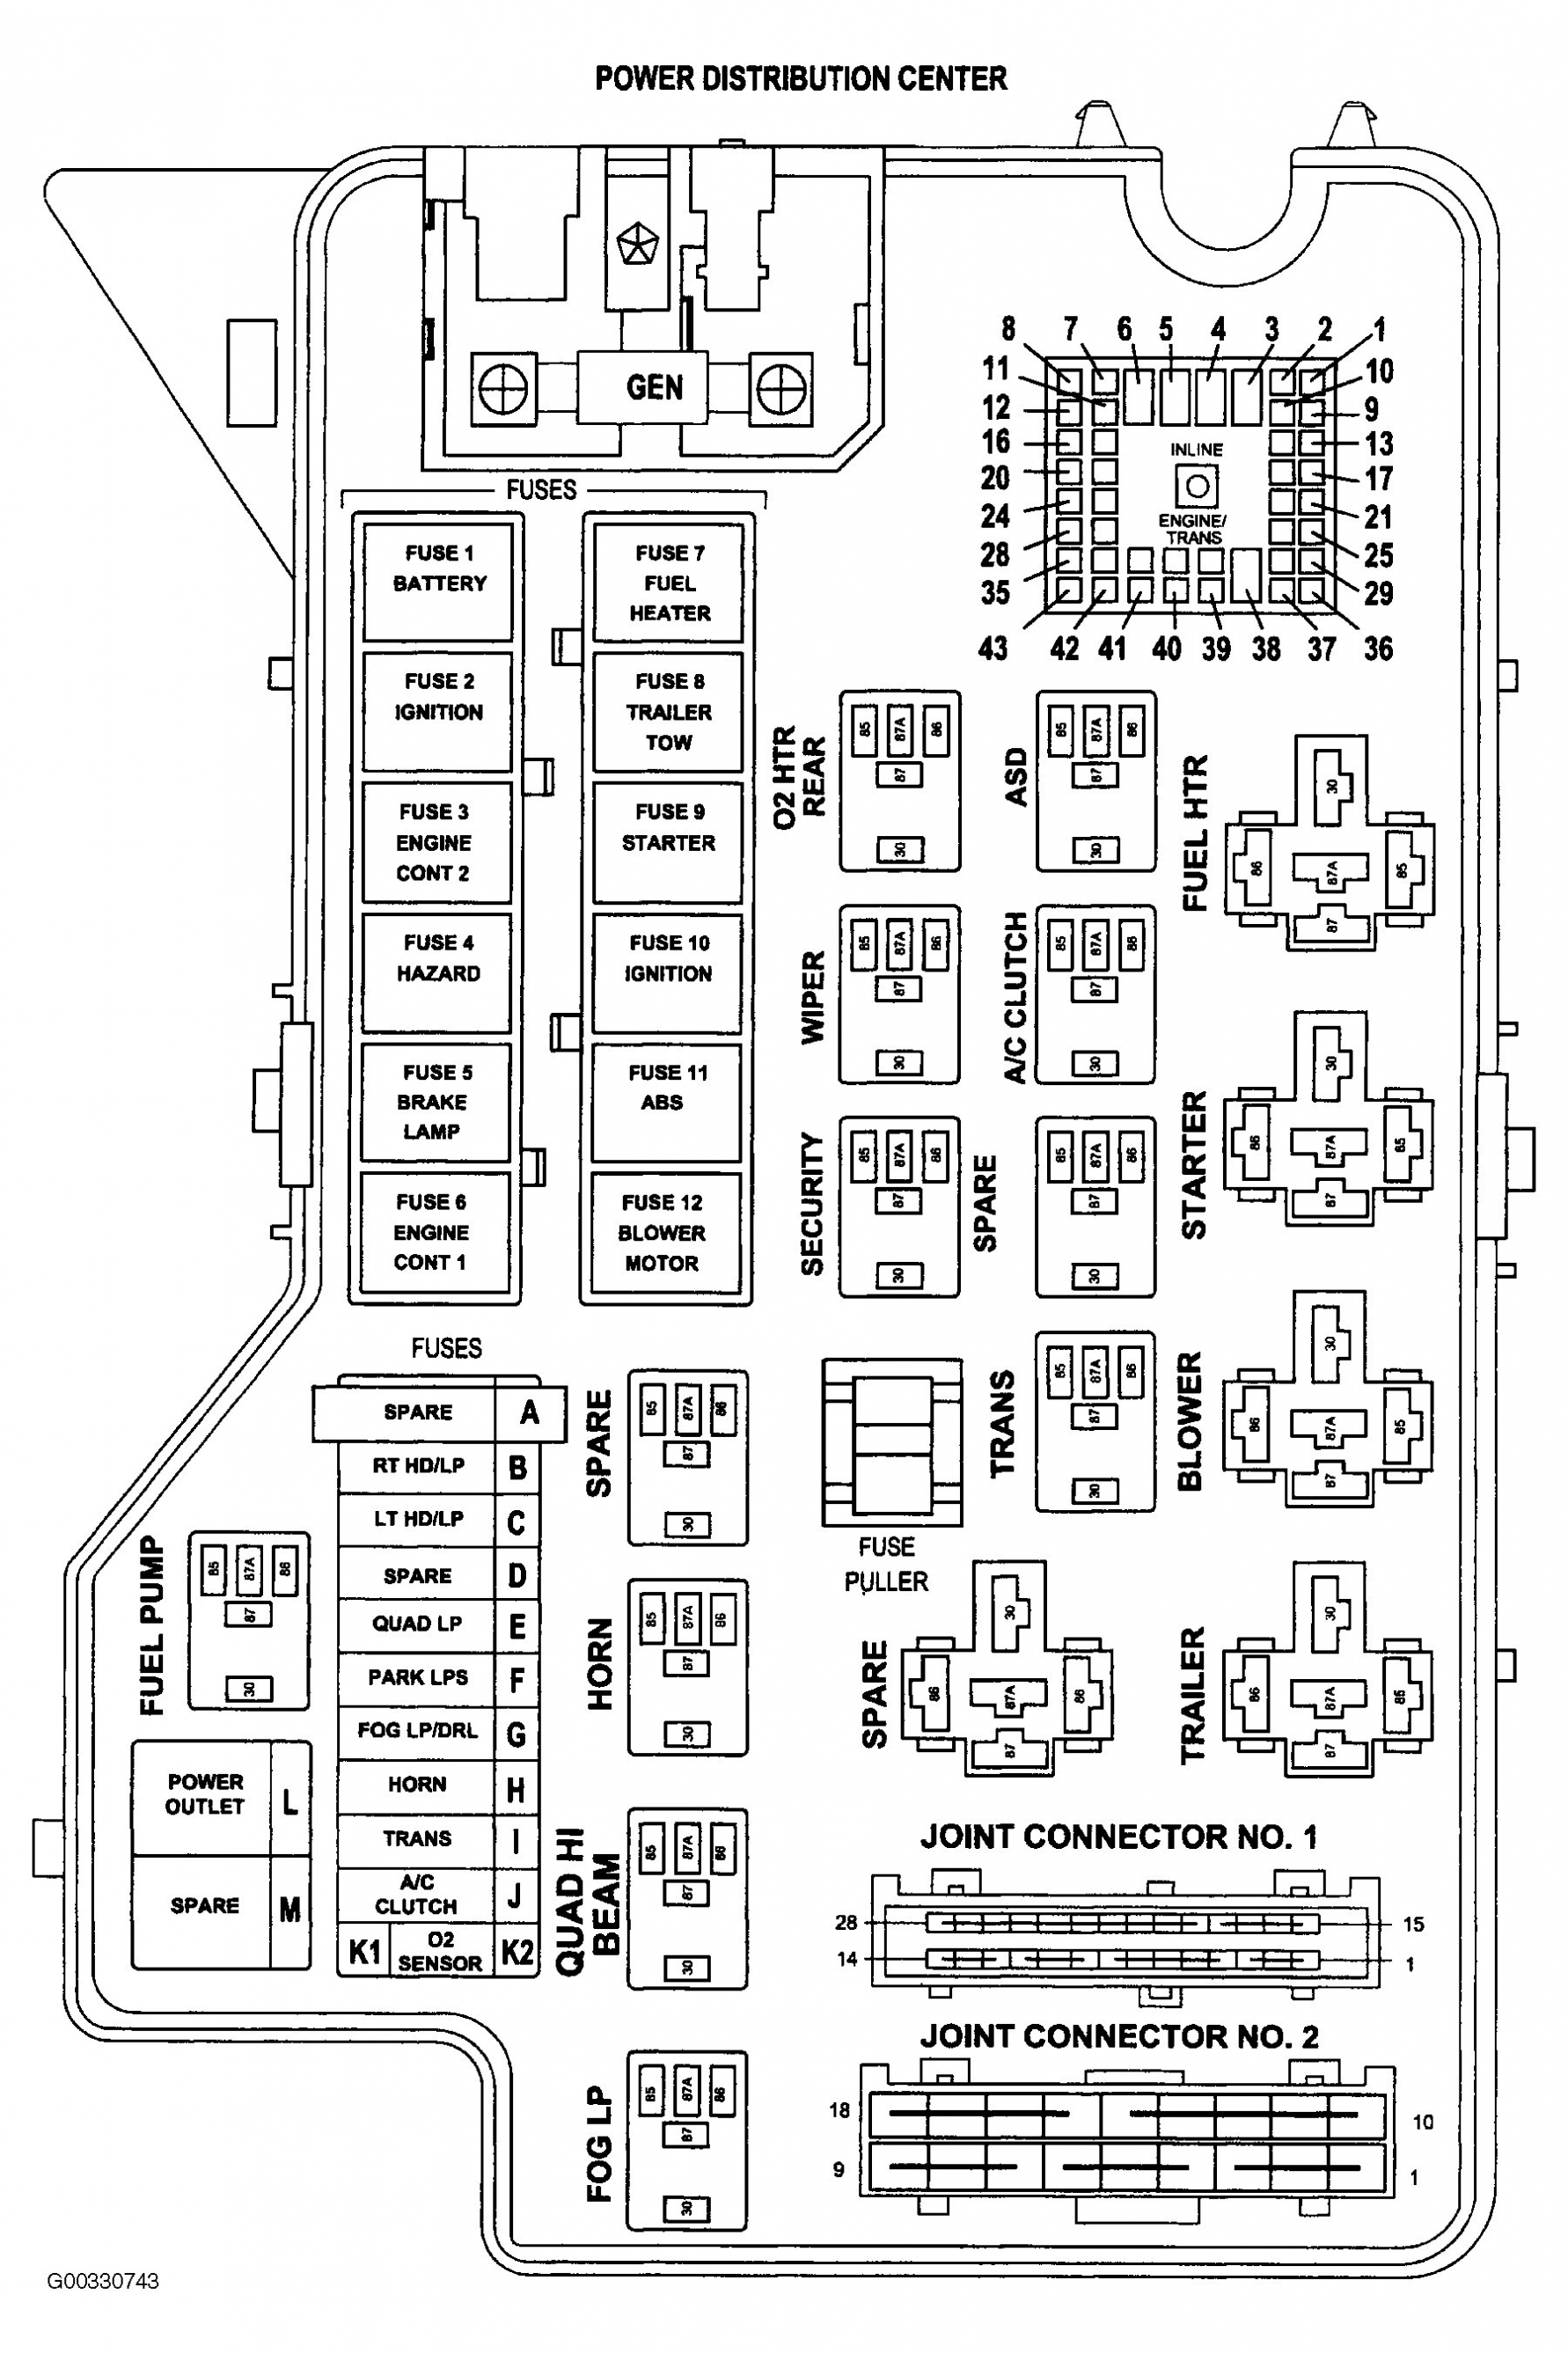 2002 Dodge Ram 1500 Trailer Ke Wiring Diagram dodge ram ... on